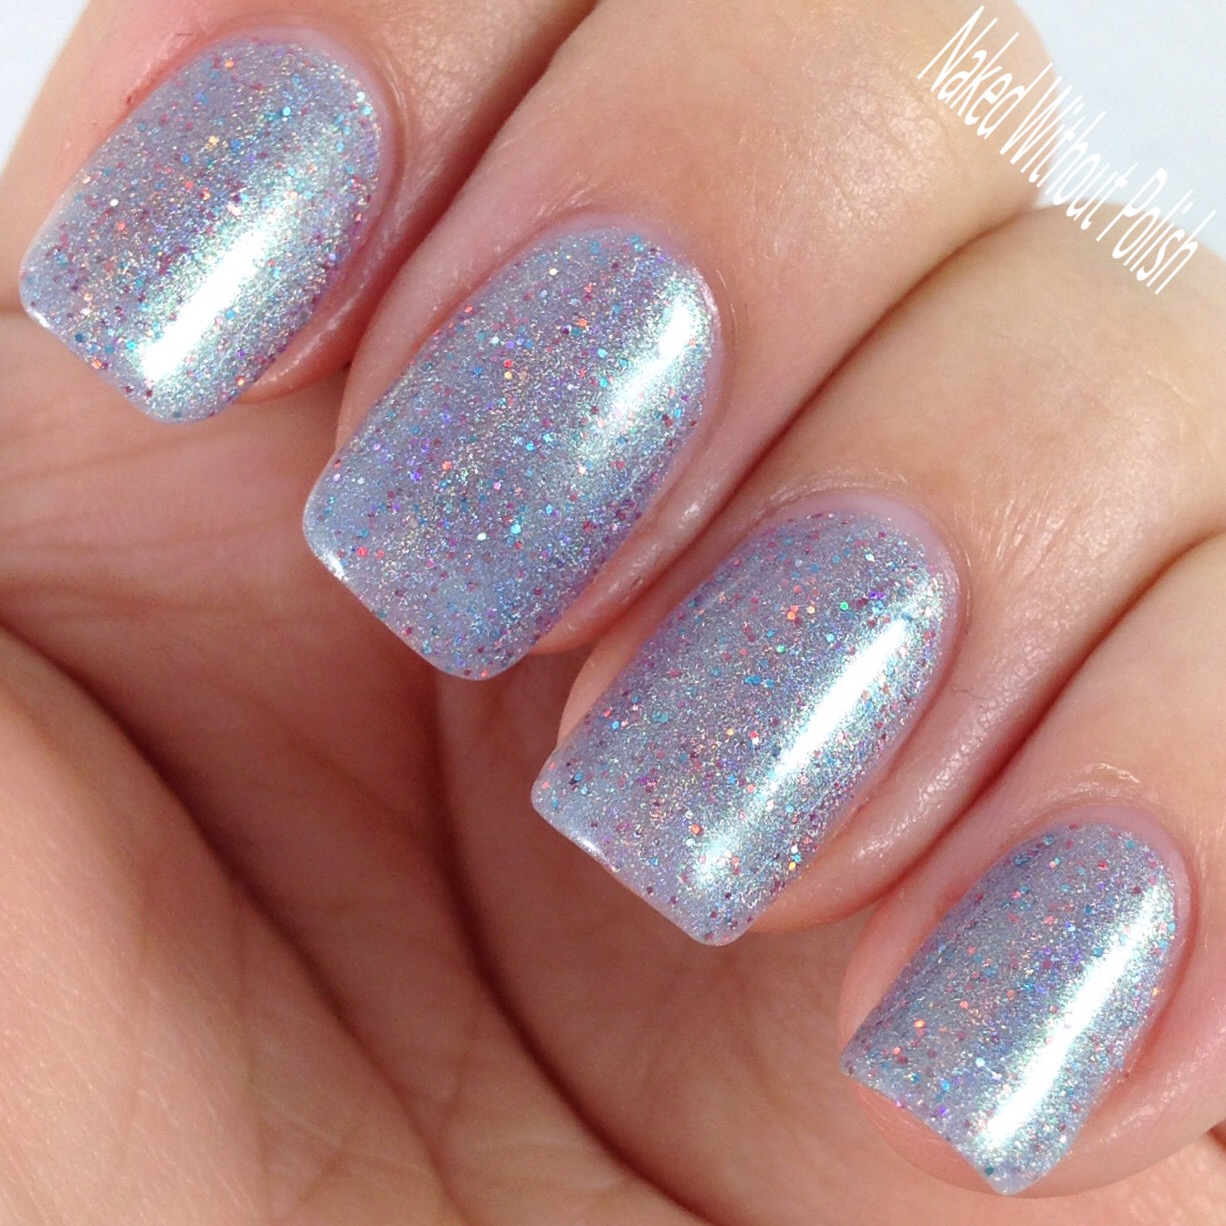 Polish-Pickup-Blush-Lacquers-Hop-on-the-Bandwagon-8